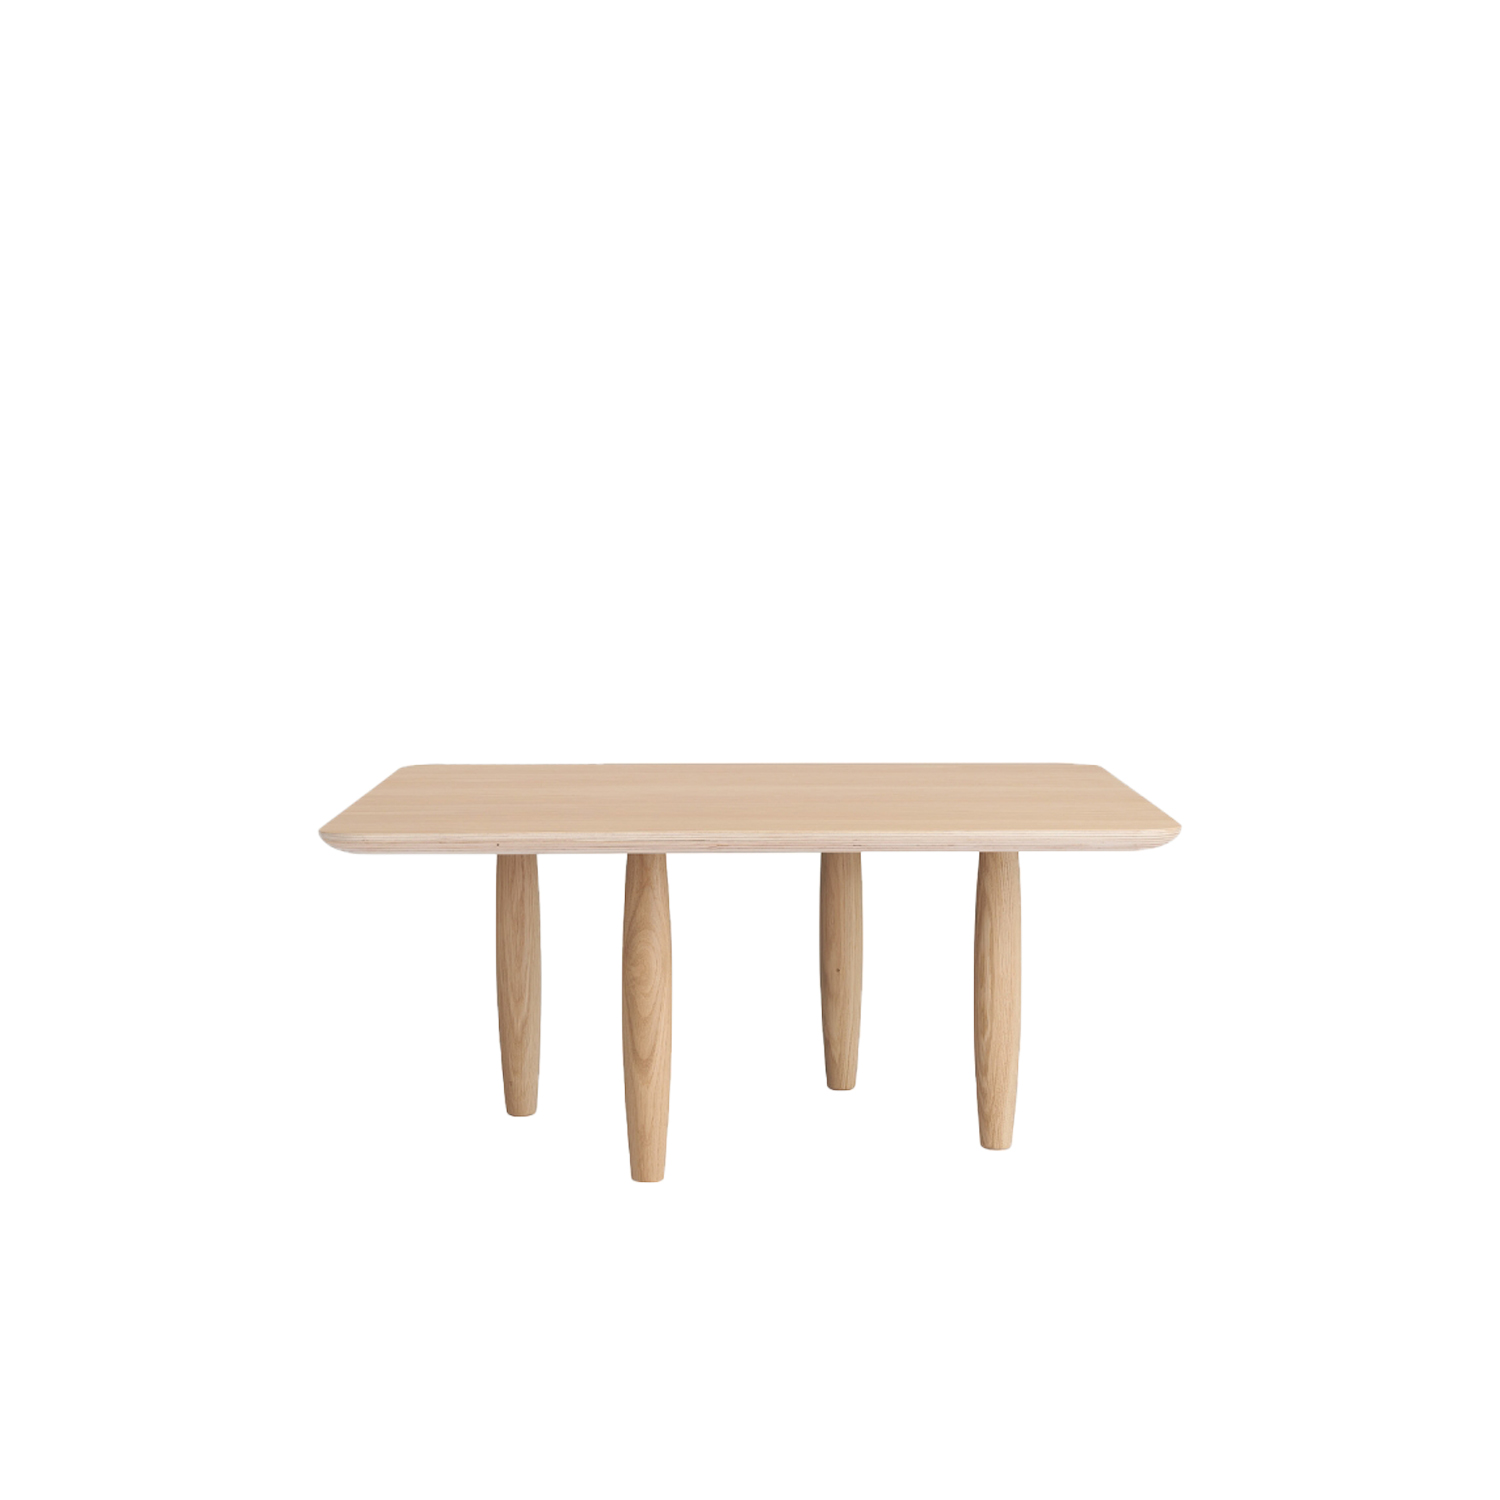 """Oku Coffee Table - Oku is an interpretation of the Japanese word for oak 'Ōku'. Oku refers to the essence of the design - oak. """"Through experiments with the balance between lightness and heaviness, making it paper thin when seen from one angle and solid from others, we've emphasised the material in a simple design"""".    The Oku table top is produced in oak veneer with round edges, adding a refined detail to the large surface. The legs of turned oak timber sections, is positioned sporadic to create the illusion of a floating table top, while also adding a sculptural detail to the table.  Oku comes in both rectangular and circular shapes, with several size options for every room.  Felt pads included.   